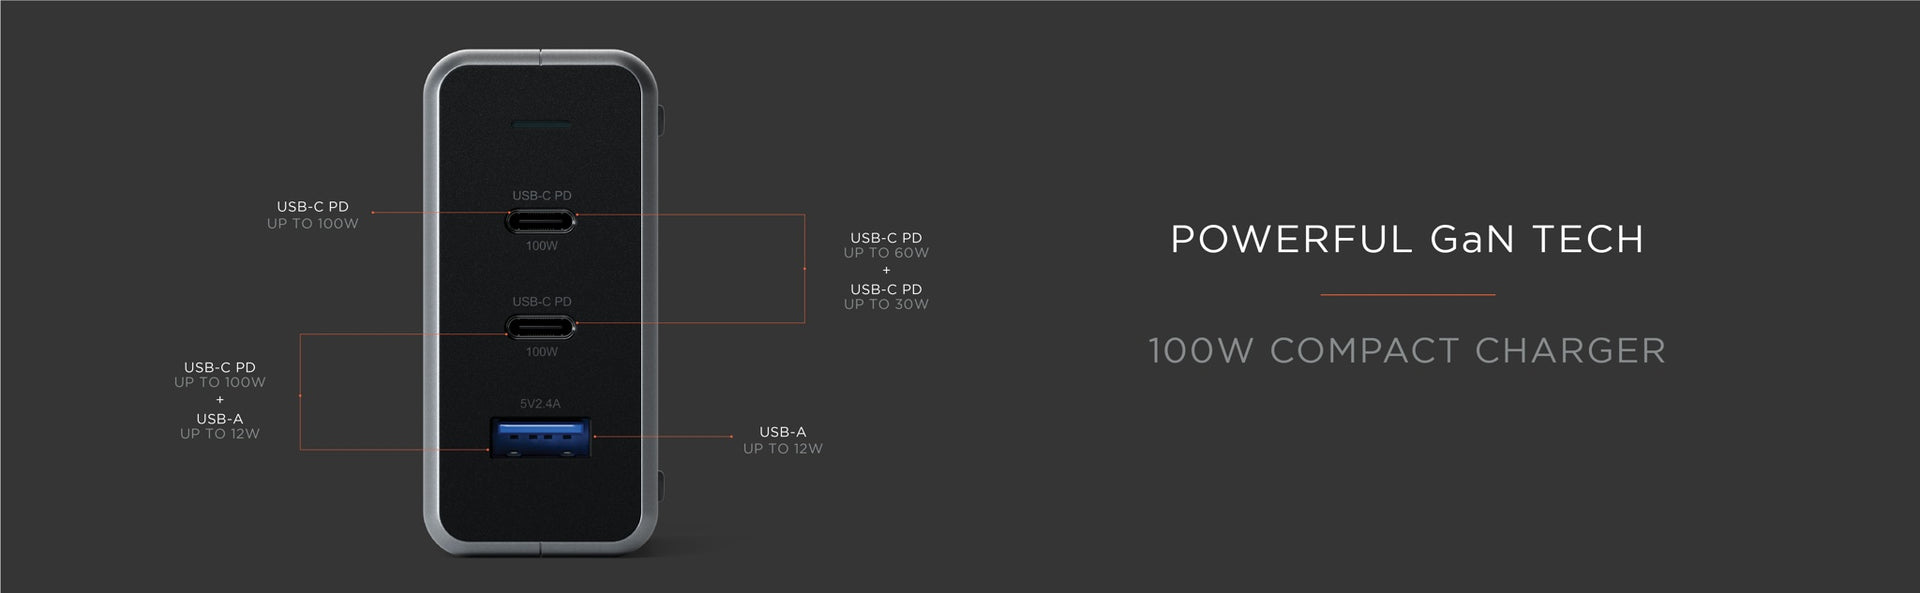 100W USB-C PD Compact GaN Charger (US)